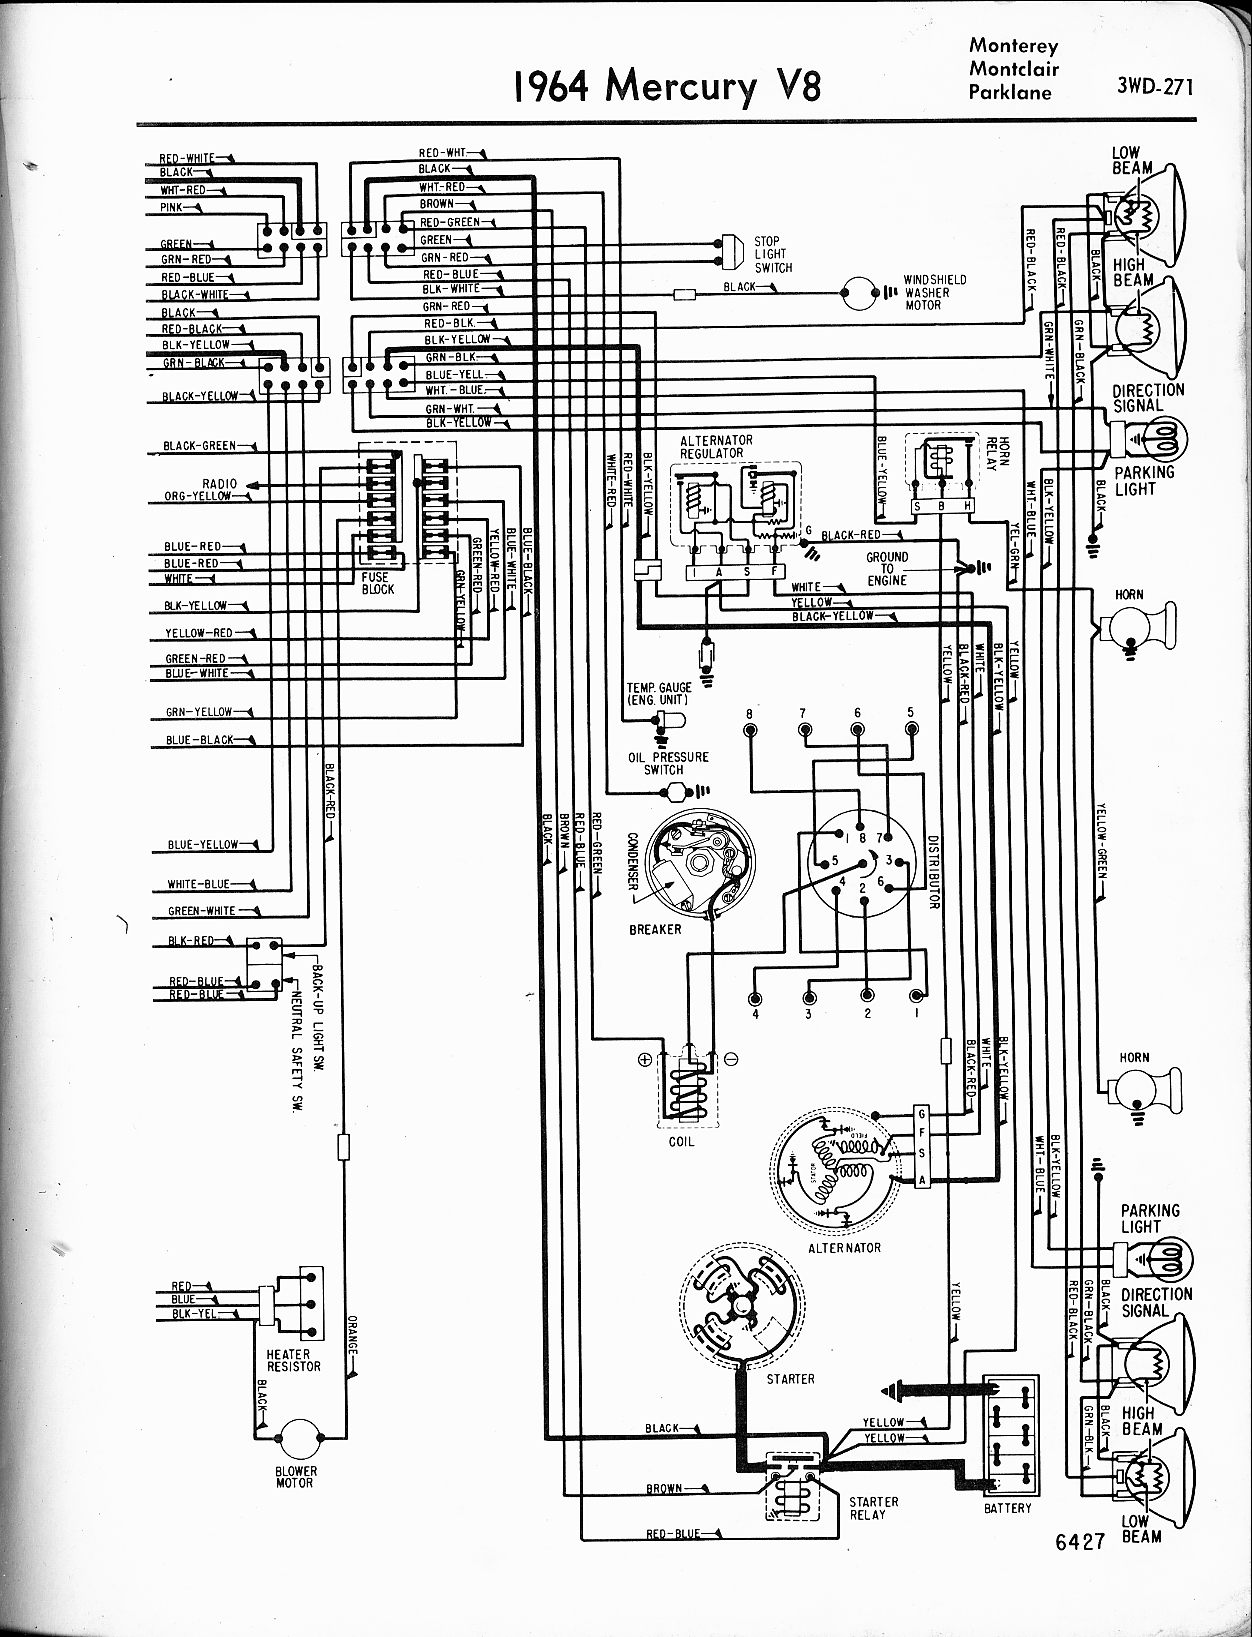 MWire5765 271 mercury wiring diagrams the old car manual project 1968 ford wiring diagrams at arjmand.co